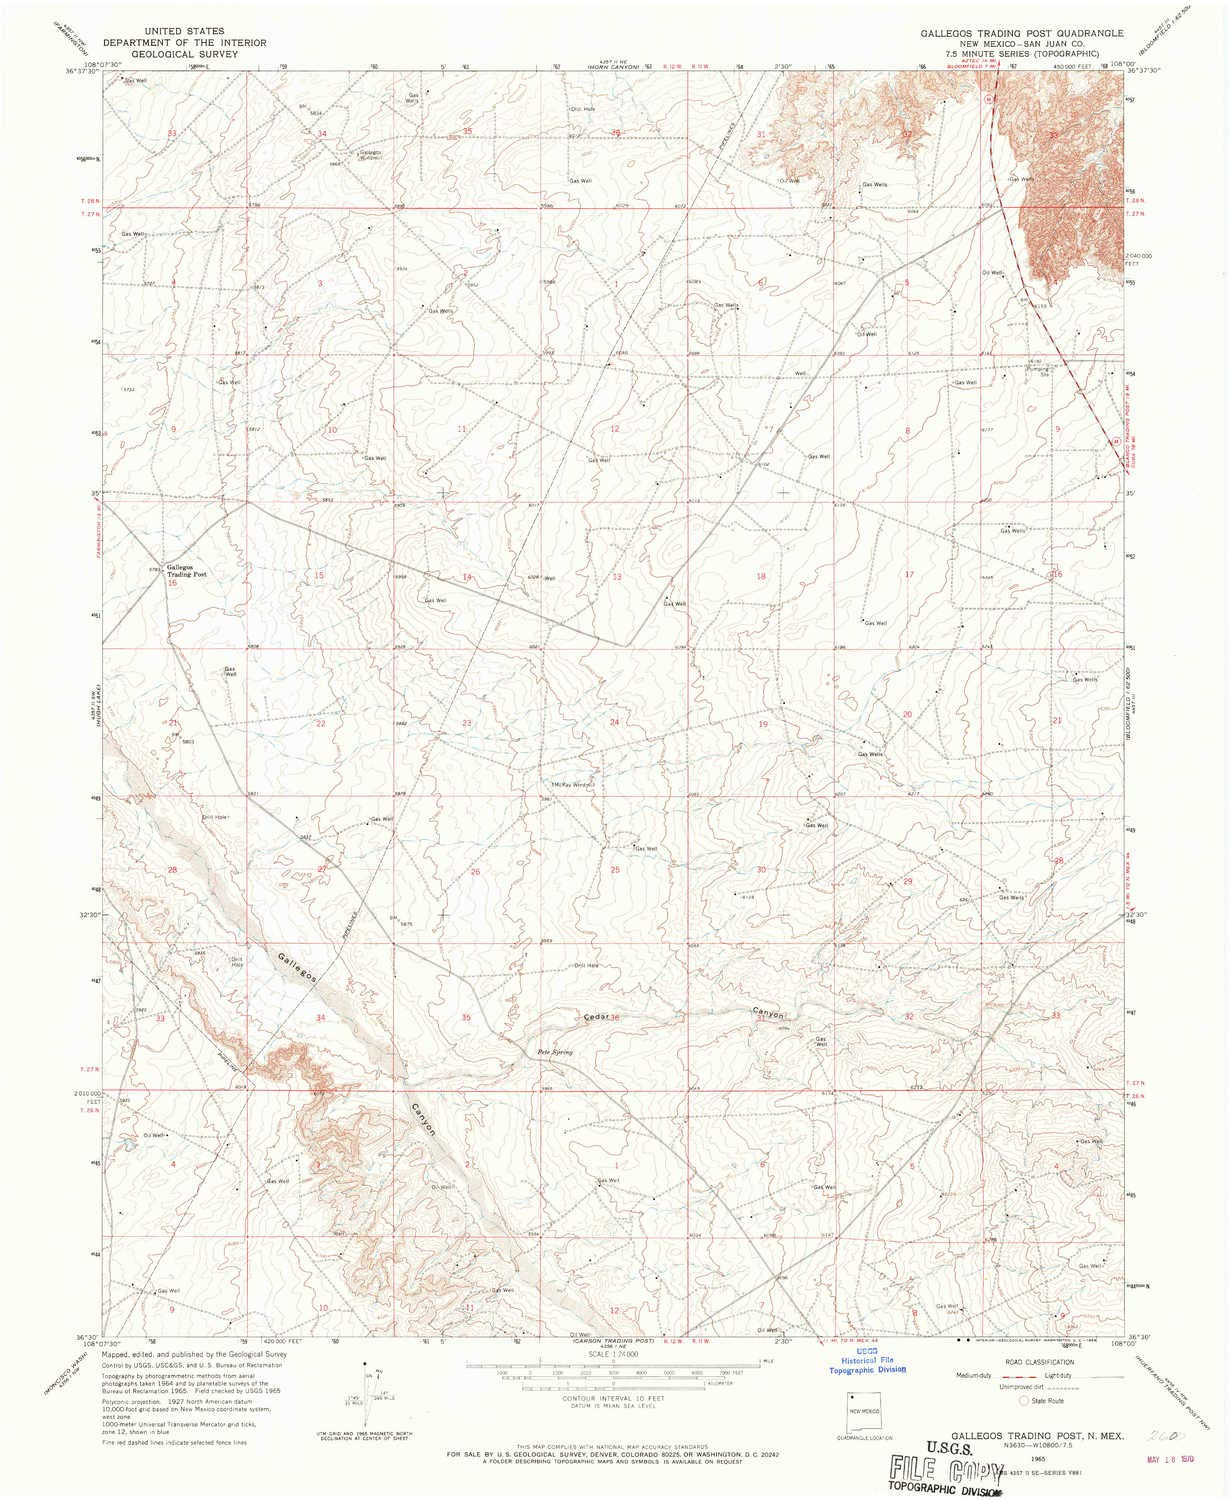 Amazon.com : YellowMaps Gallegos Trading Post NM topo map, 1 ... on atlas map of new mexico, show me a map of new york, mapquest hobbs new mexico, show me a map of new england, large map of new mexico, pitchers of the map of new mexico, online map of new mexico, ma new mexico, show state of new mexico on map, show me a map texas,